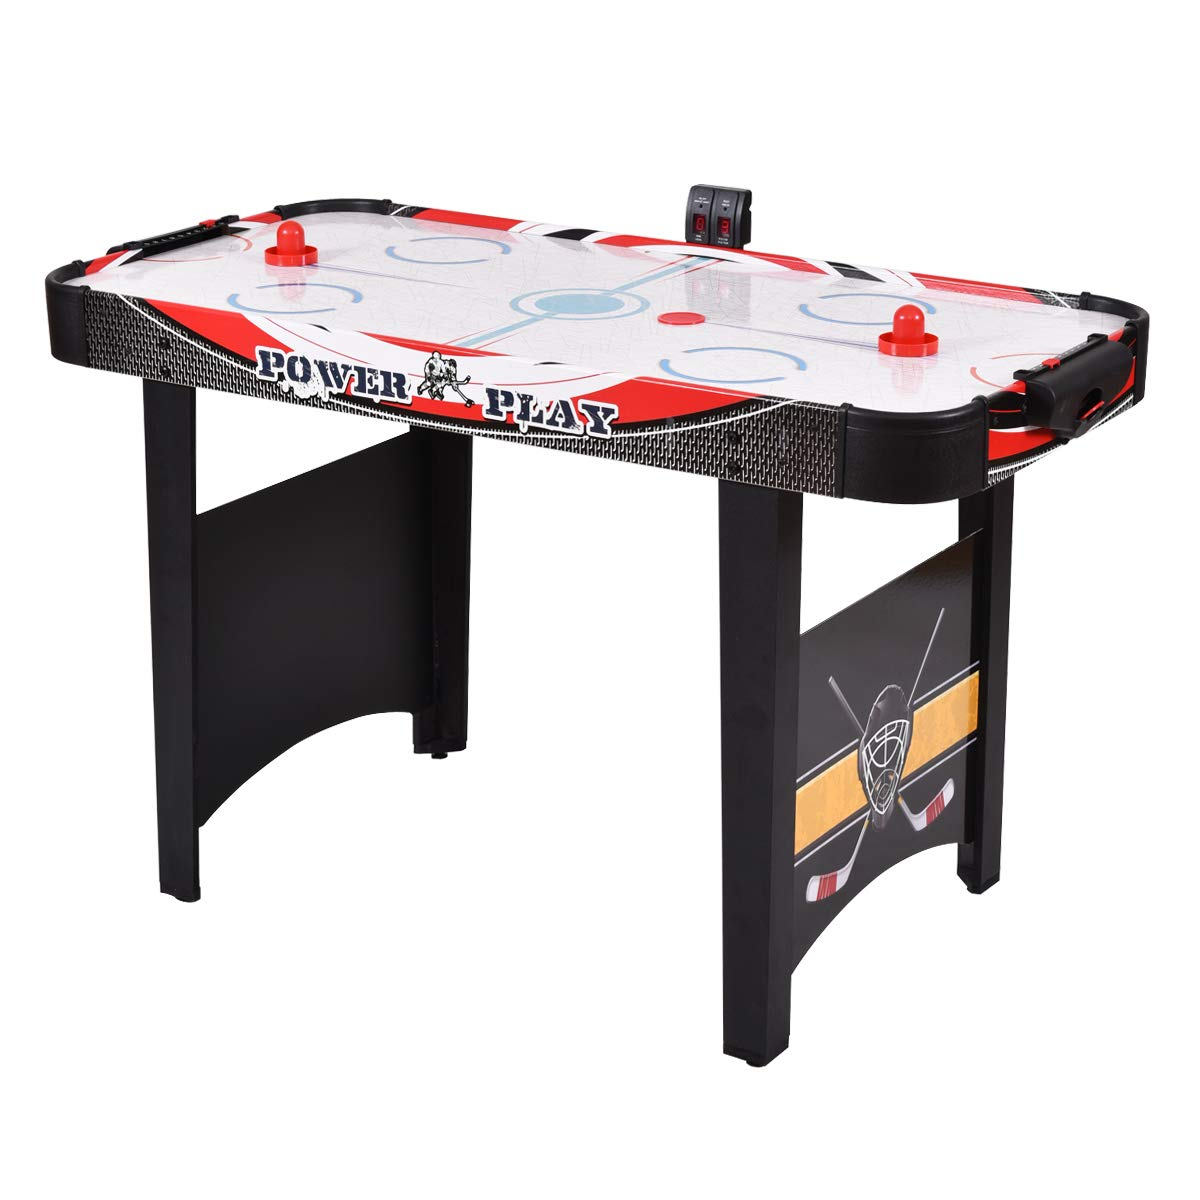 GYMAX 48'' Air Hockey Table with 2 Pucks 2 Pushers Electronic Scorer,for Kids and Adults by GYMAX